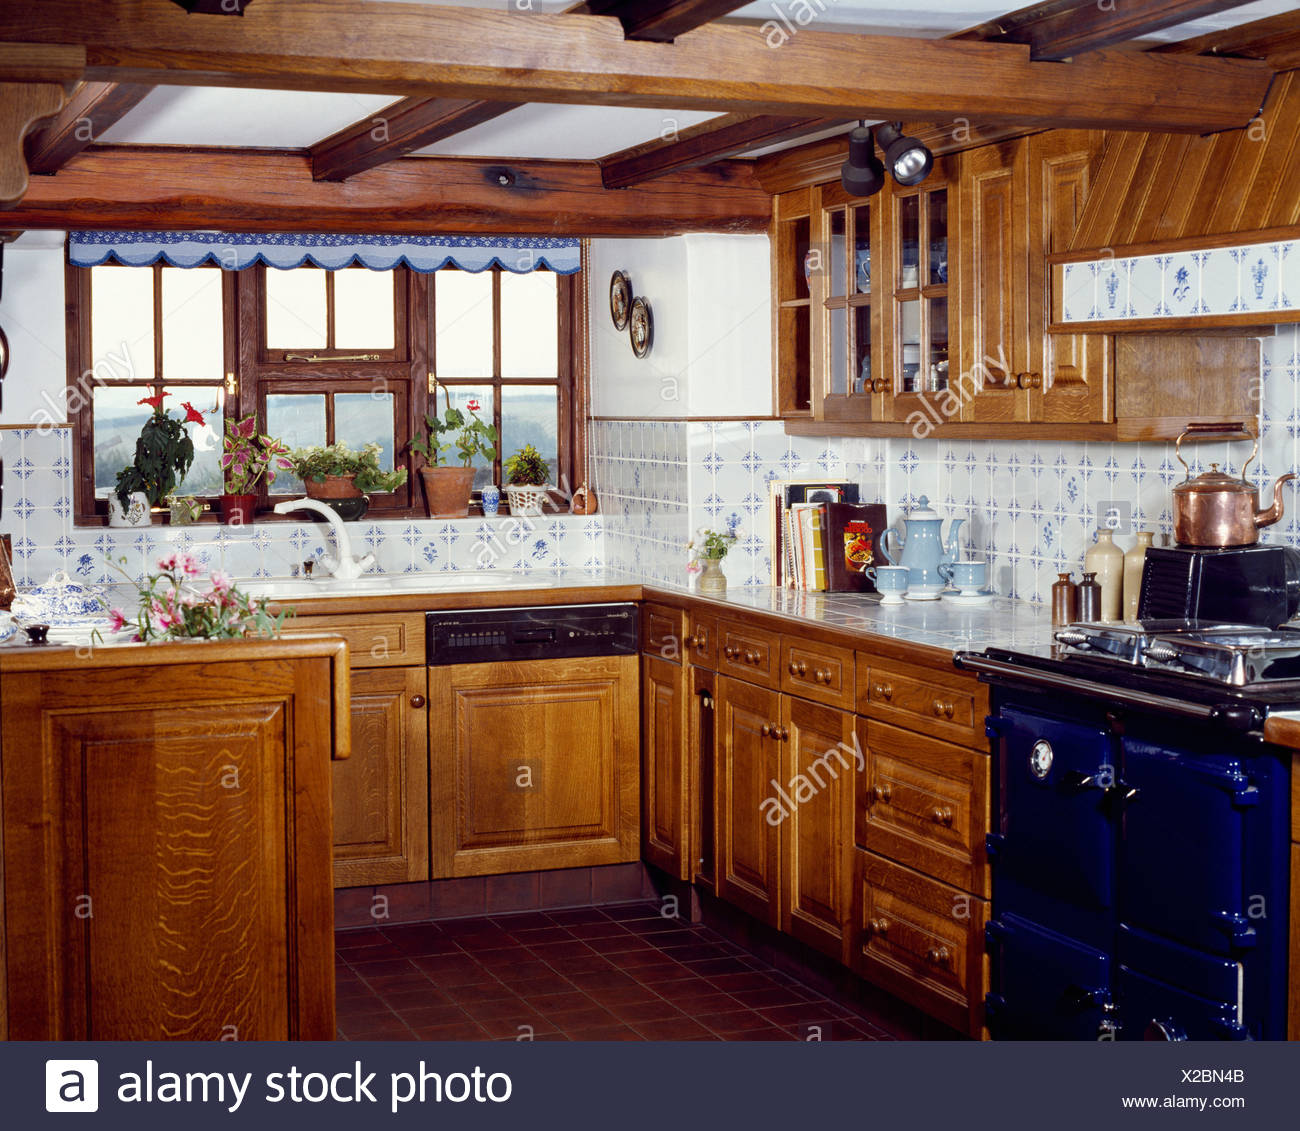 Traditional Appliance Beams Imágenes De Stock & Traditional ...